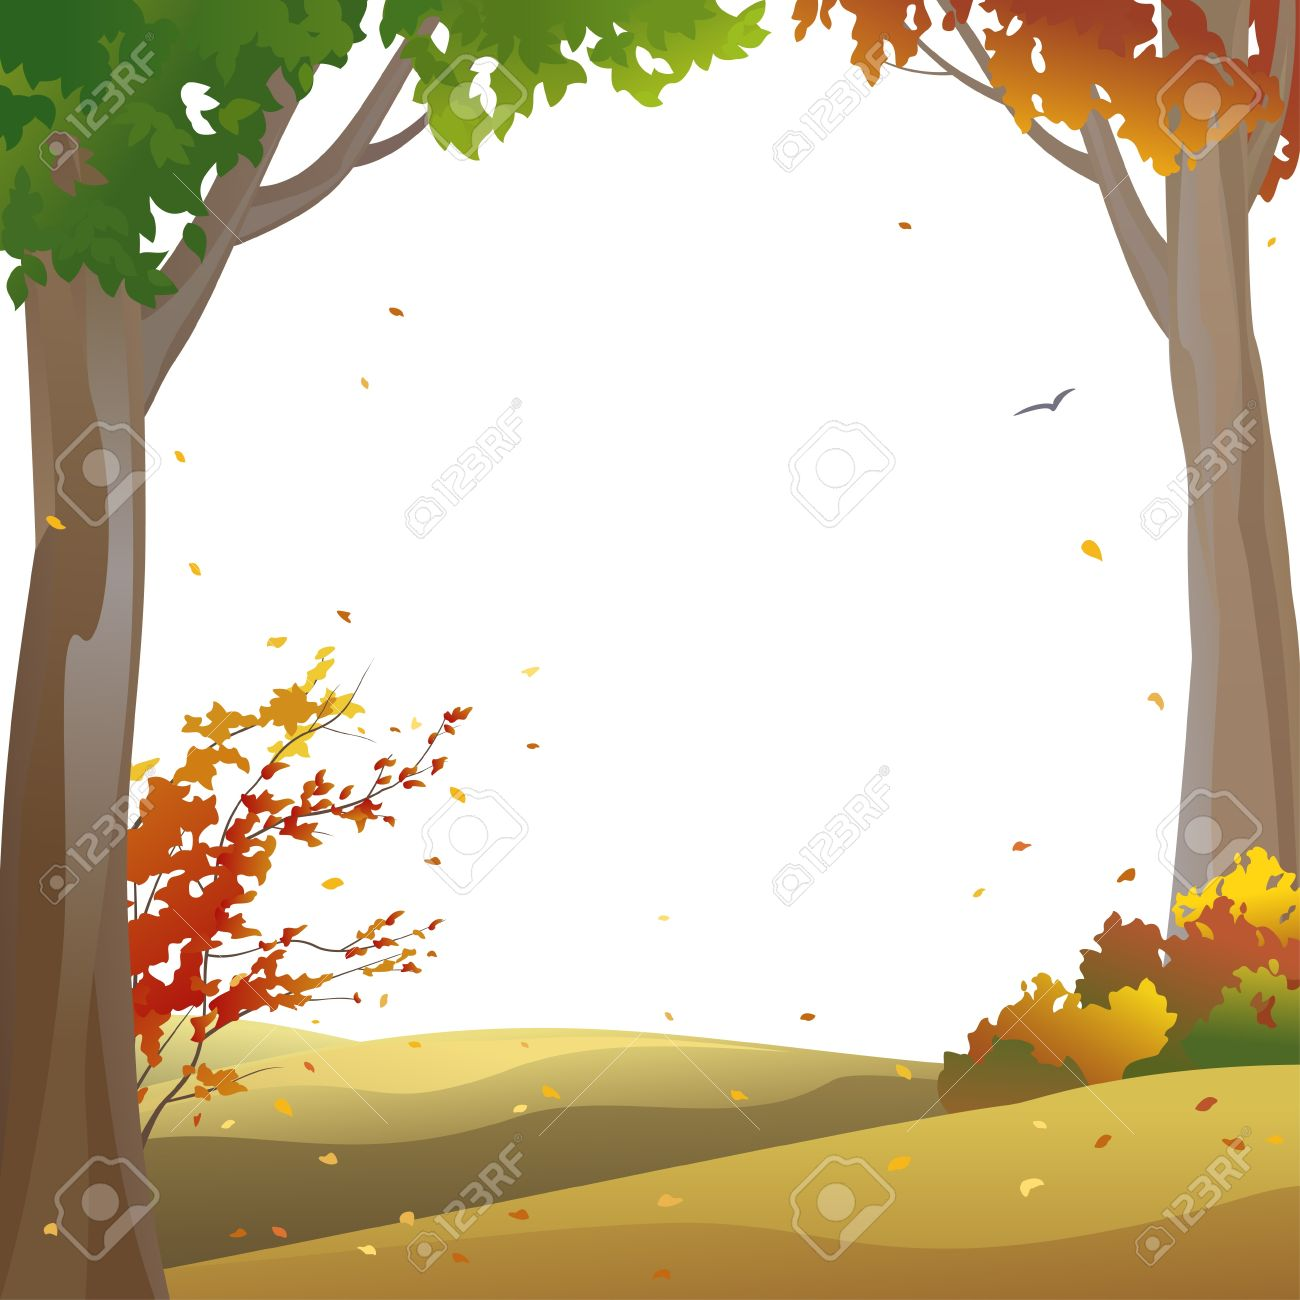 hight resolution of vector background with autumn trees and falling leaves